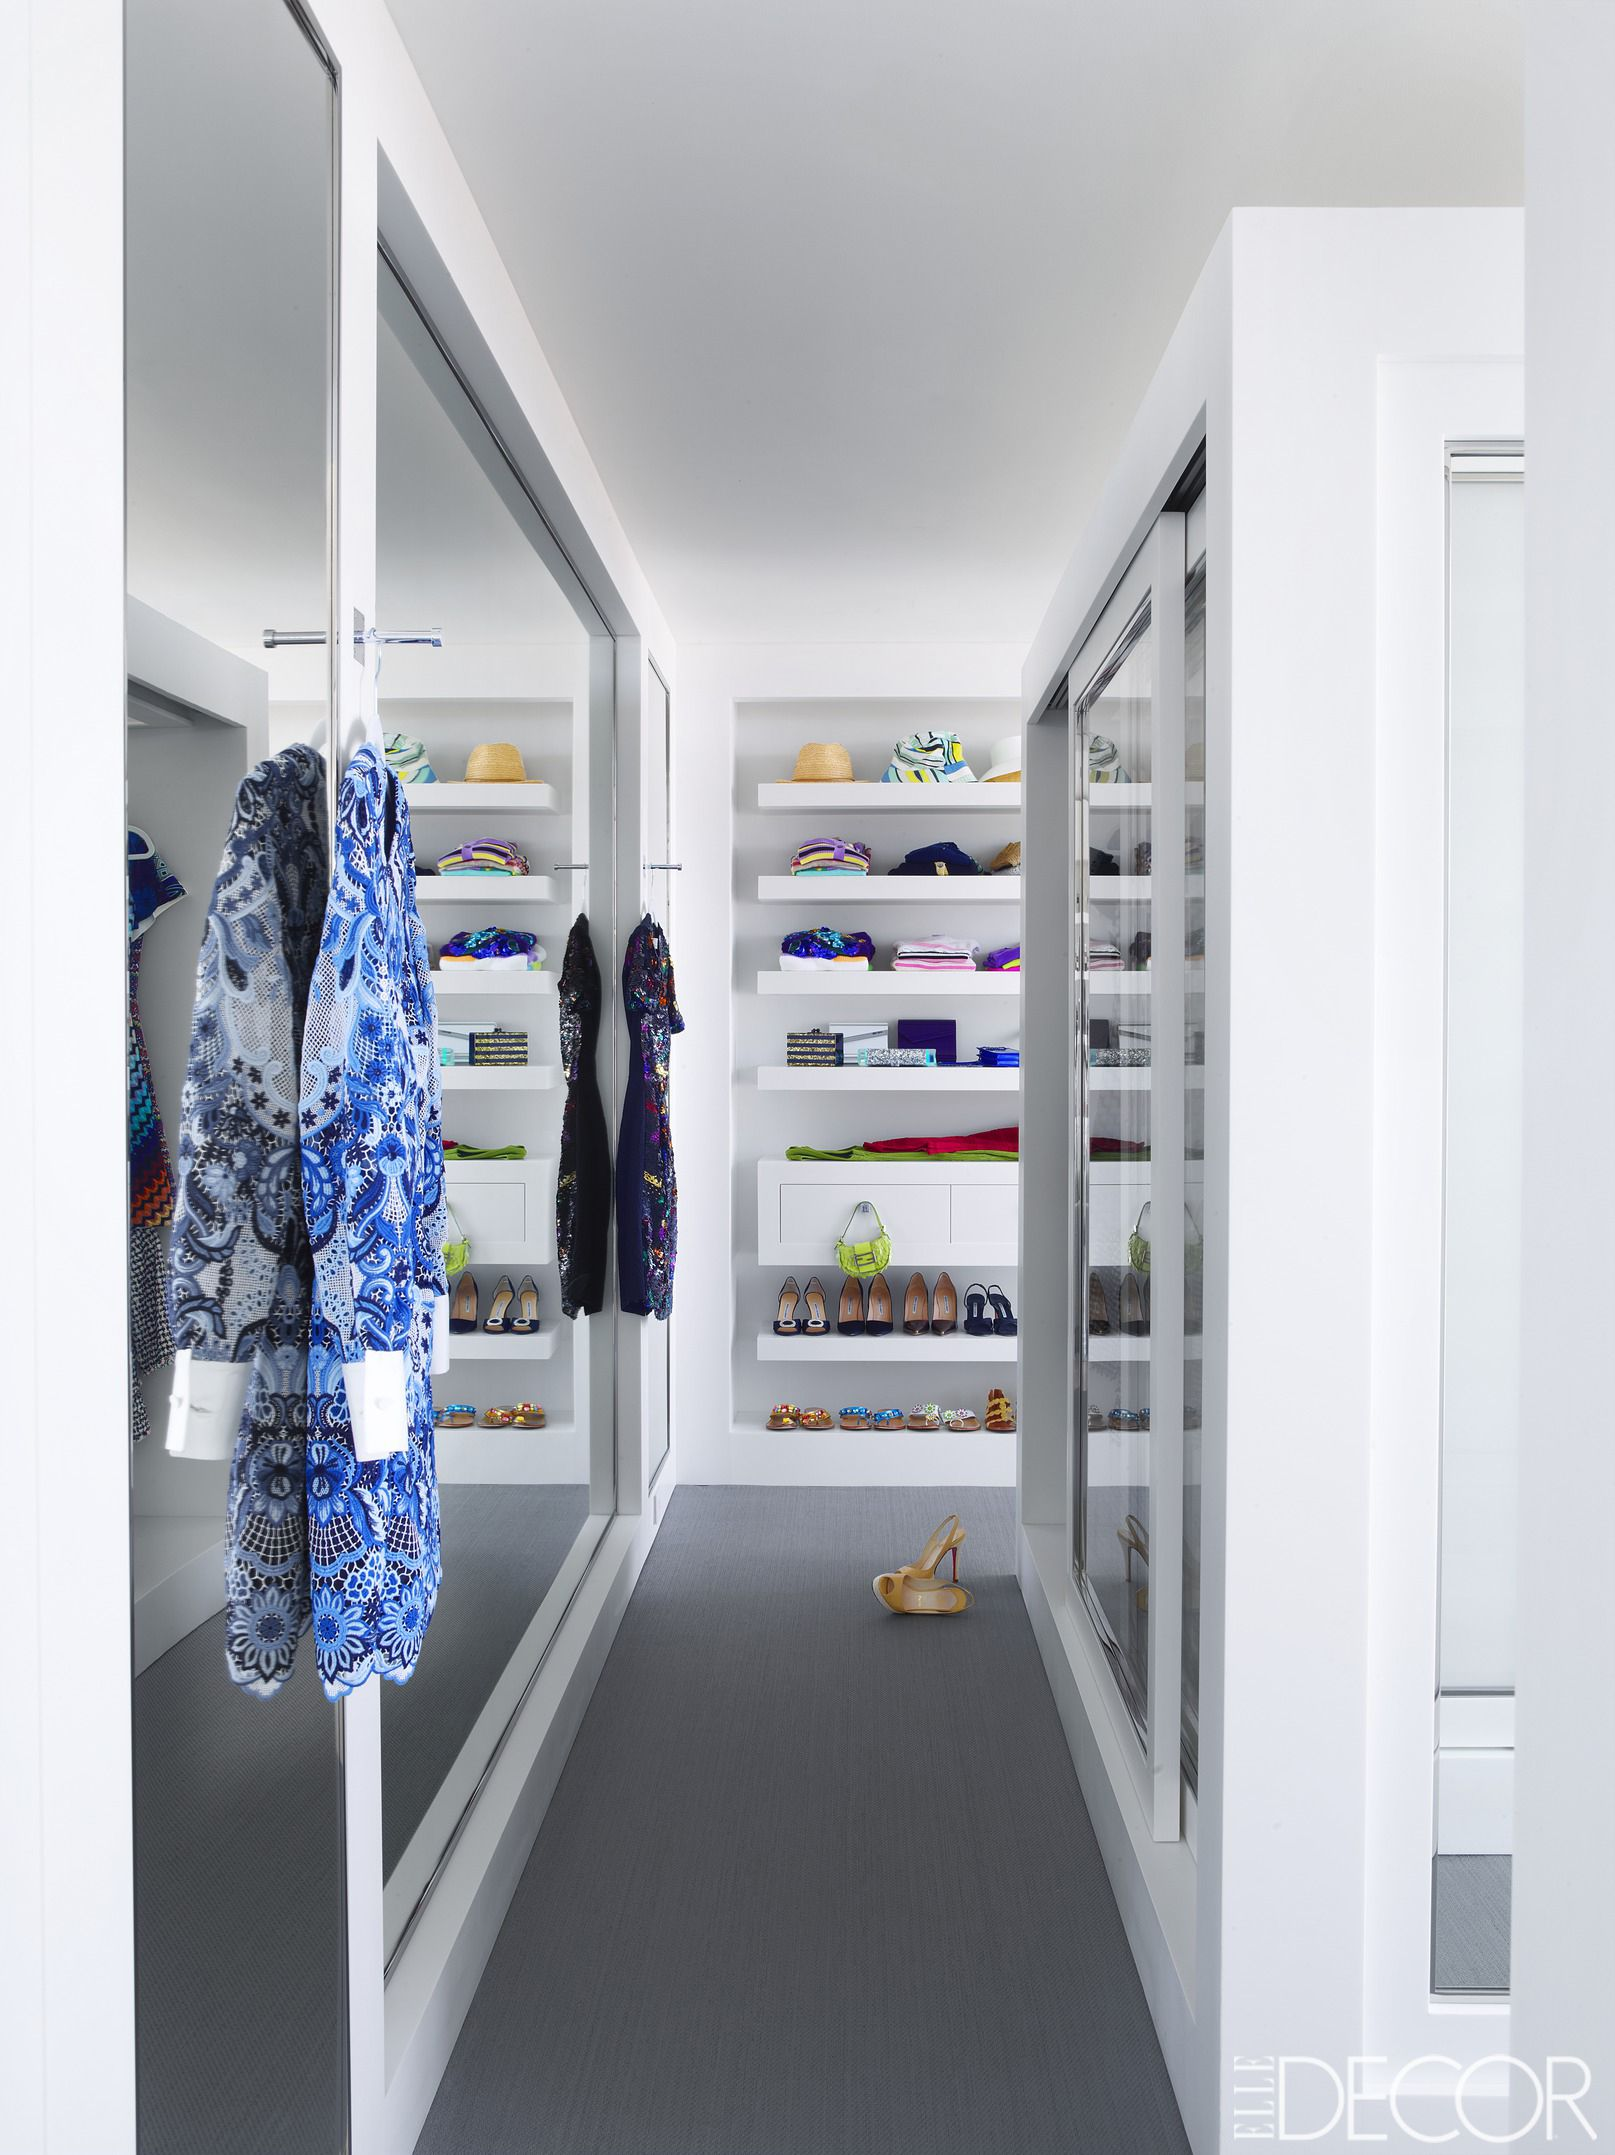 closet design nashville download photos companies software of images redesign wardrobe tulsa concept tools me size ratings ideas ladiesn near full budget cost conceptedroom furnitureners free